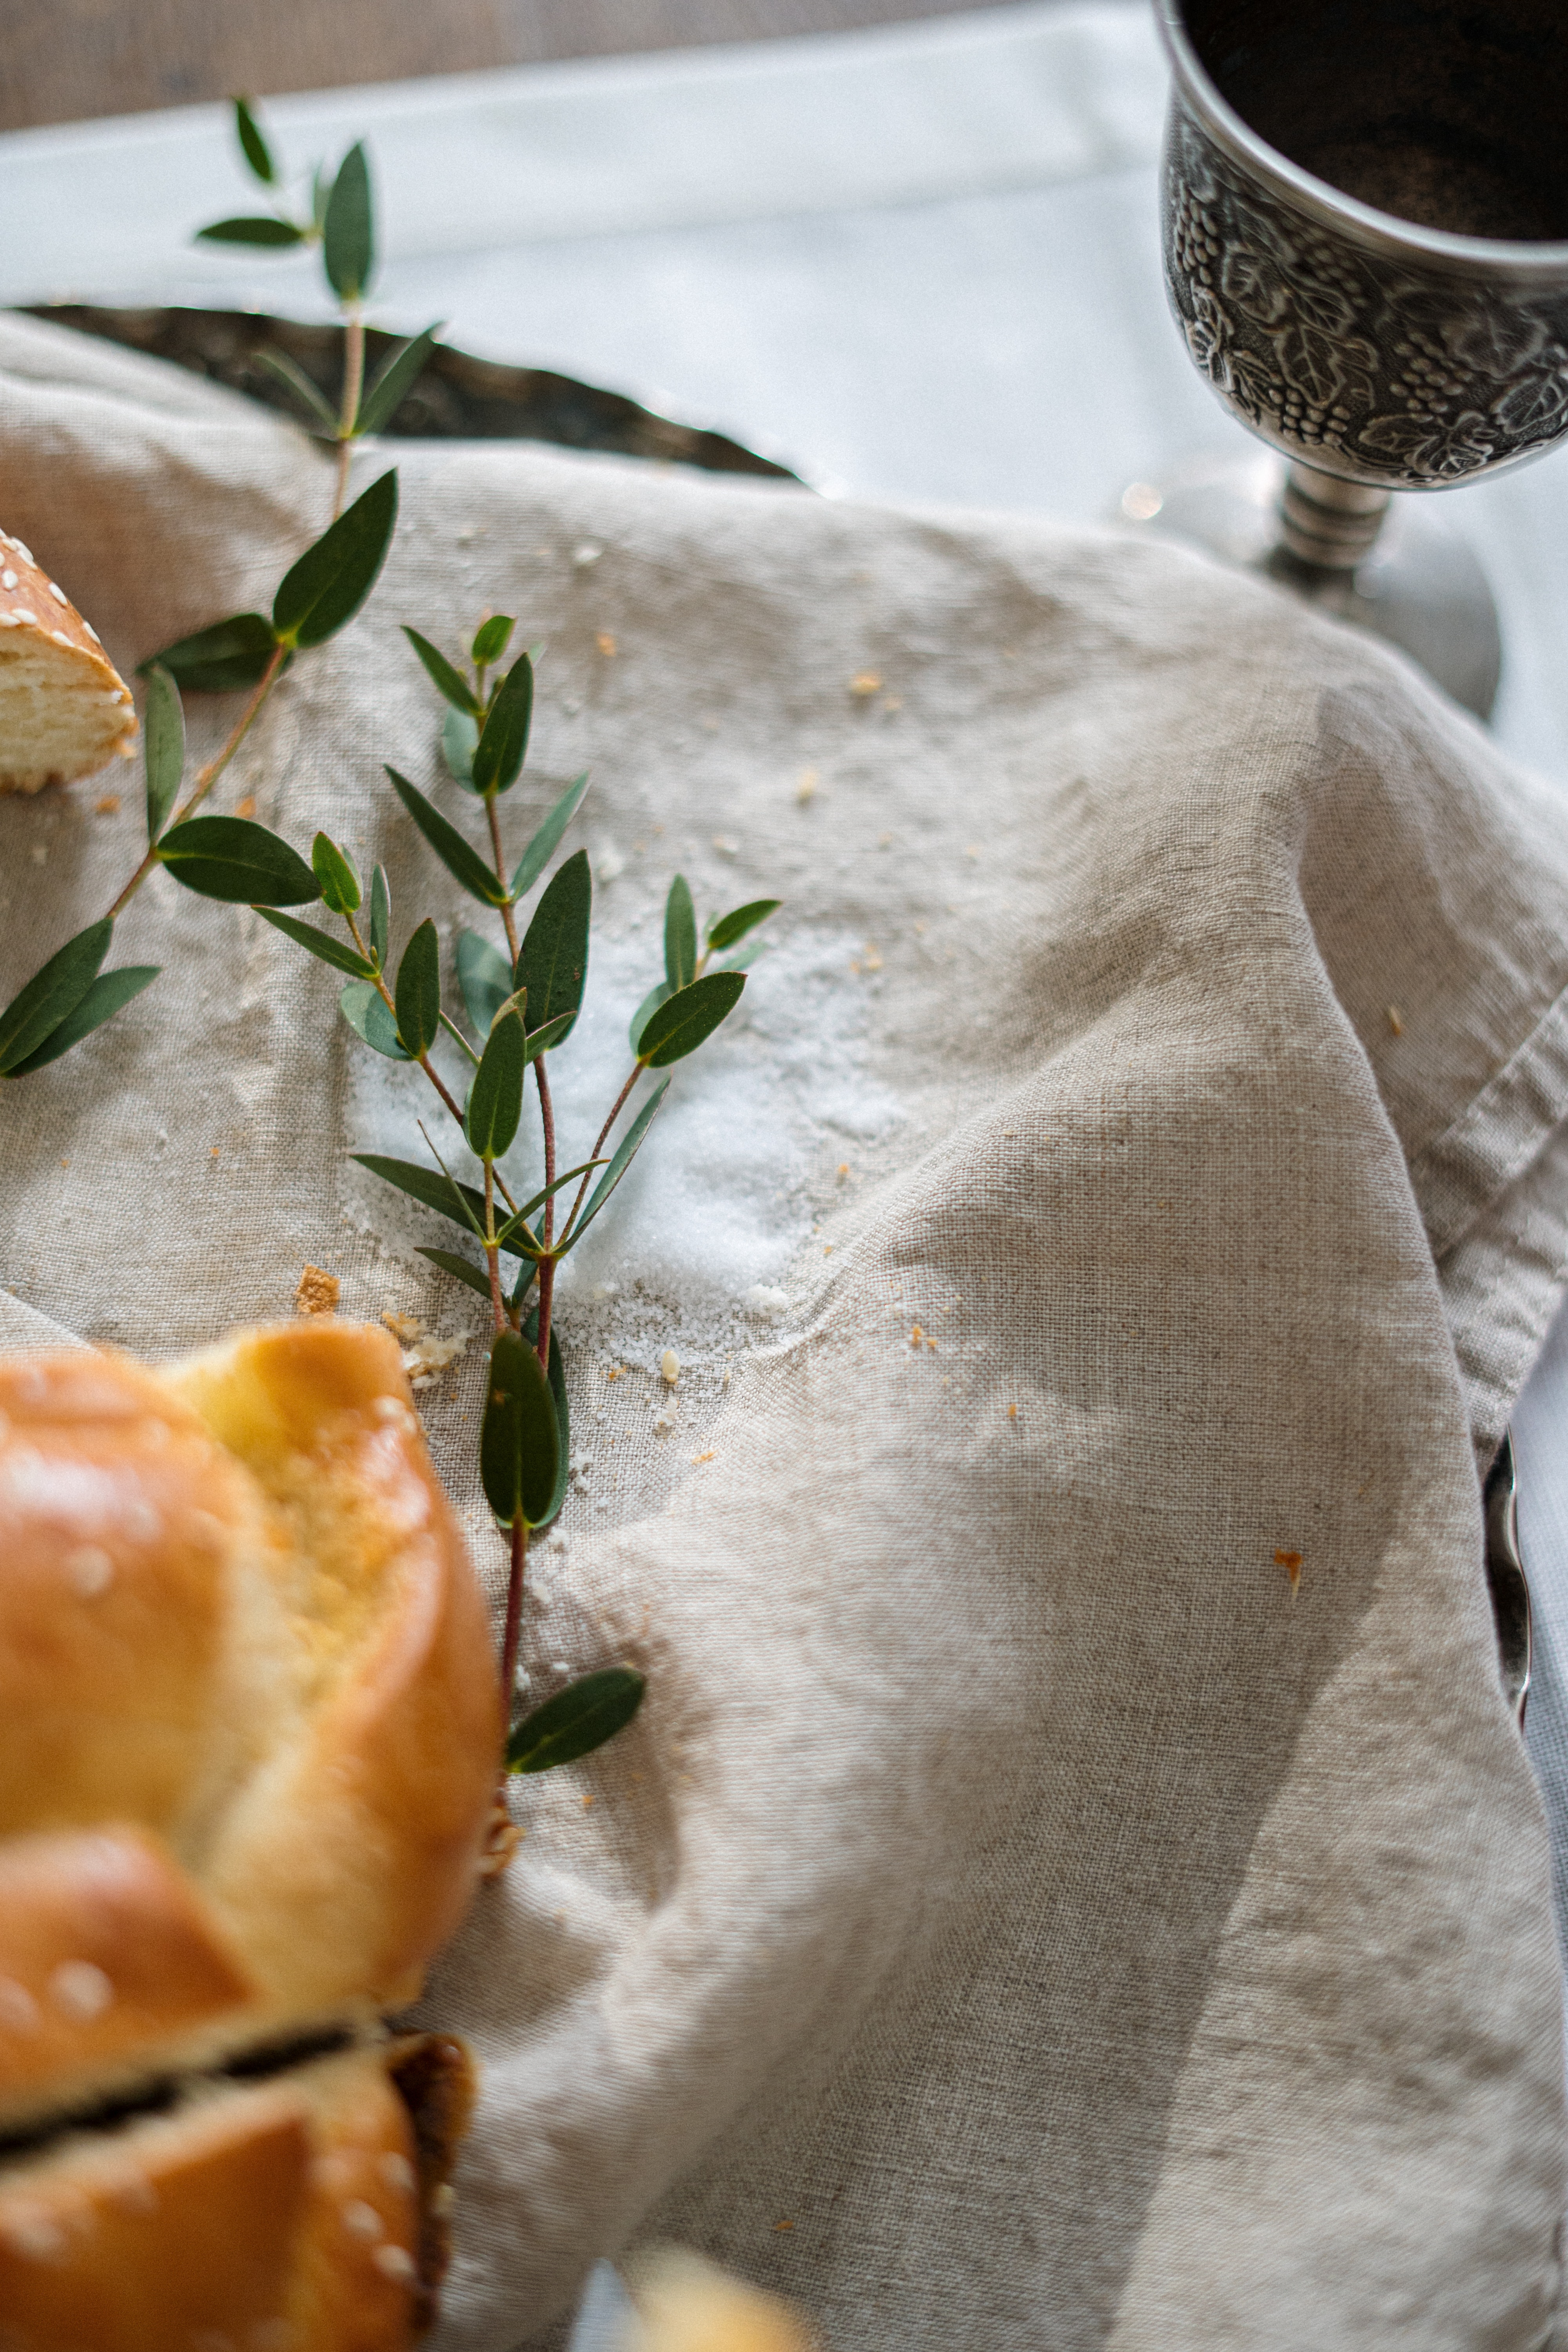 Pastries on a muslin cloth with green herbs